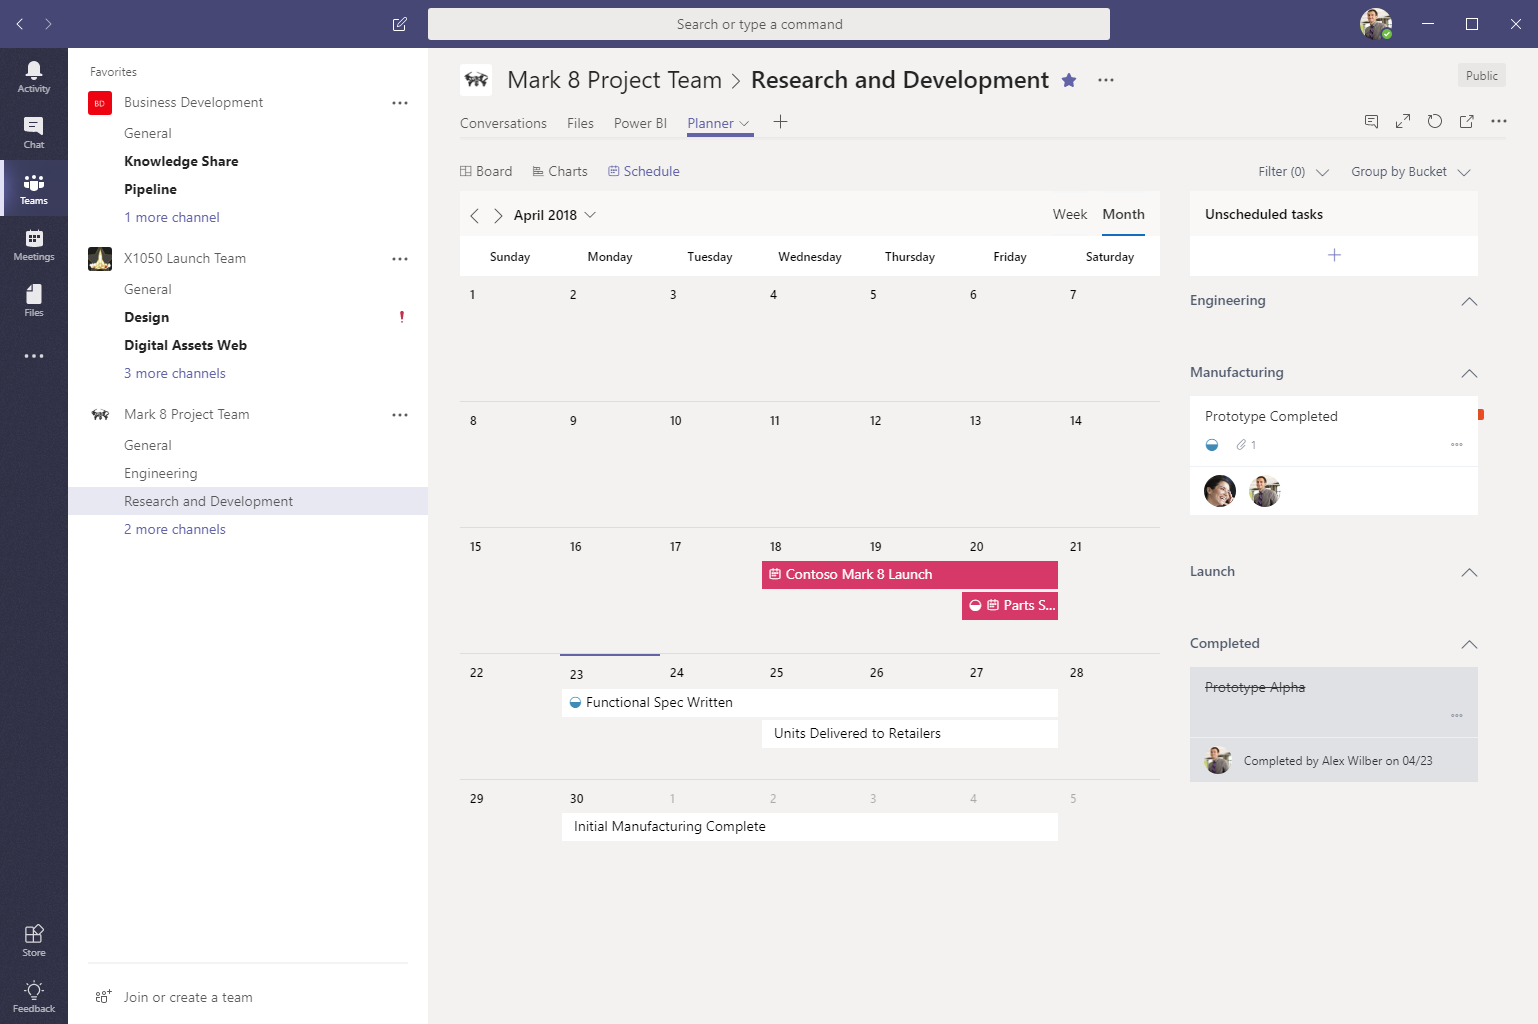 planner tab in microsoft teams now includes the schedule